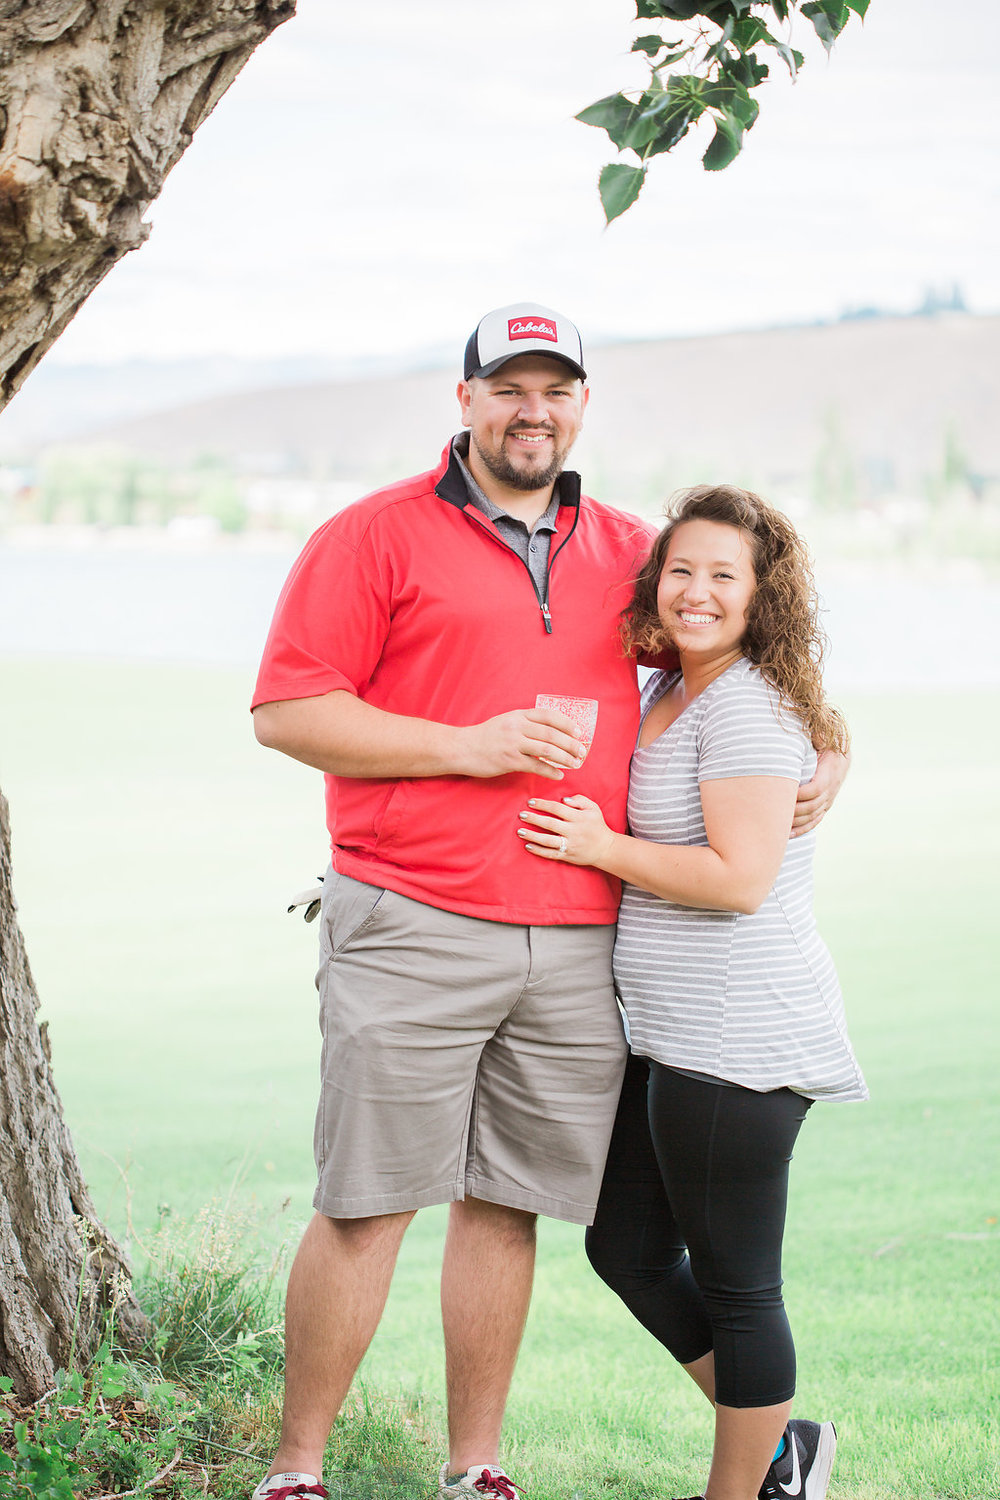 Golf Course Proposal | 9th Hole Proposal | Golf Course Photo Session | Beautiful Engagement Session | Seattle Wedding Photographer | Surprise Proposal | Happy Couple | Ring Shot